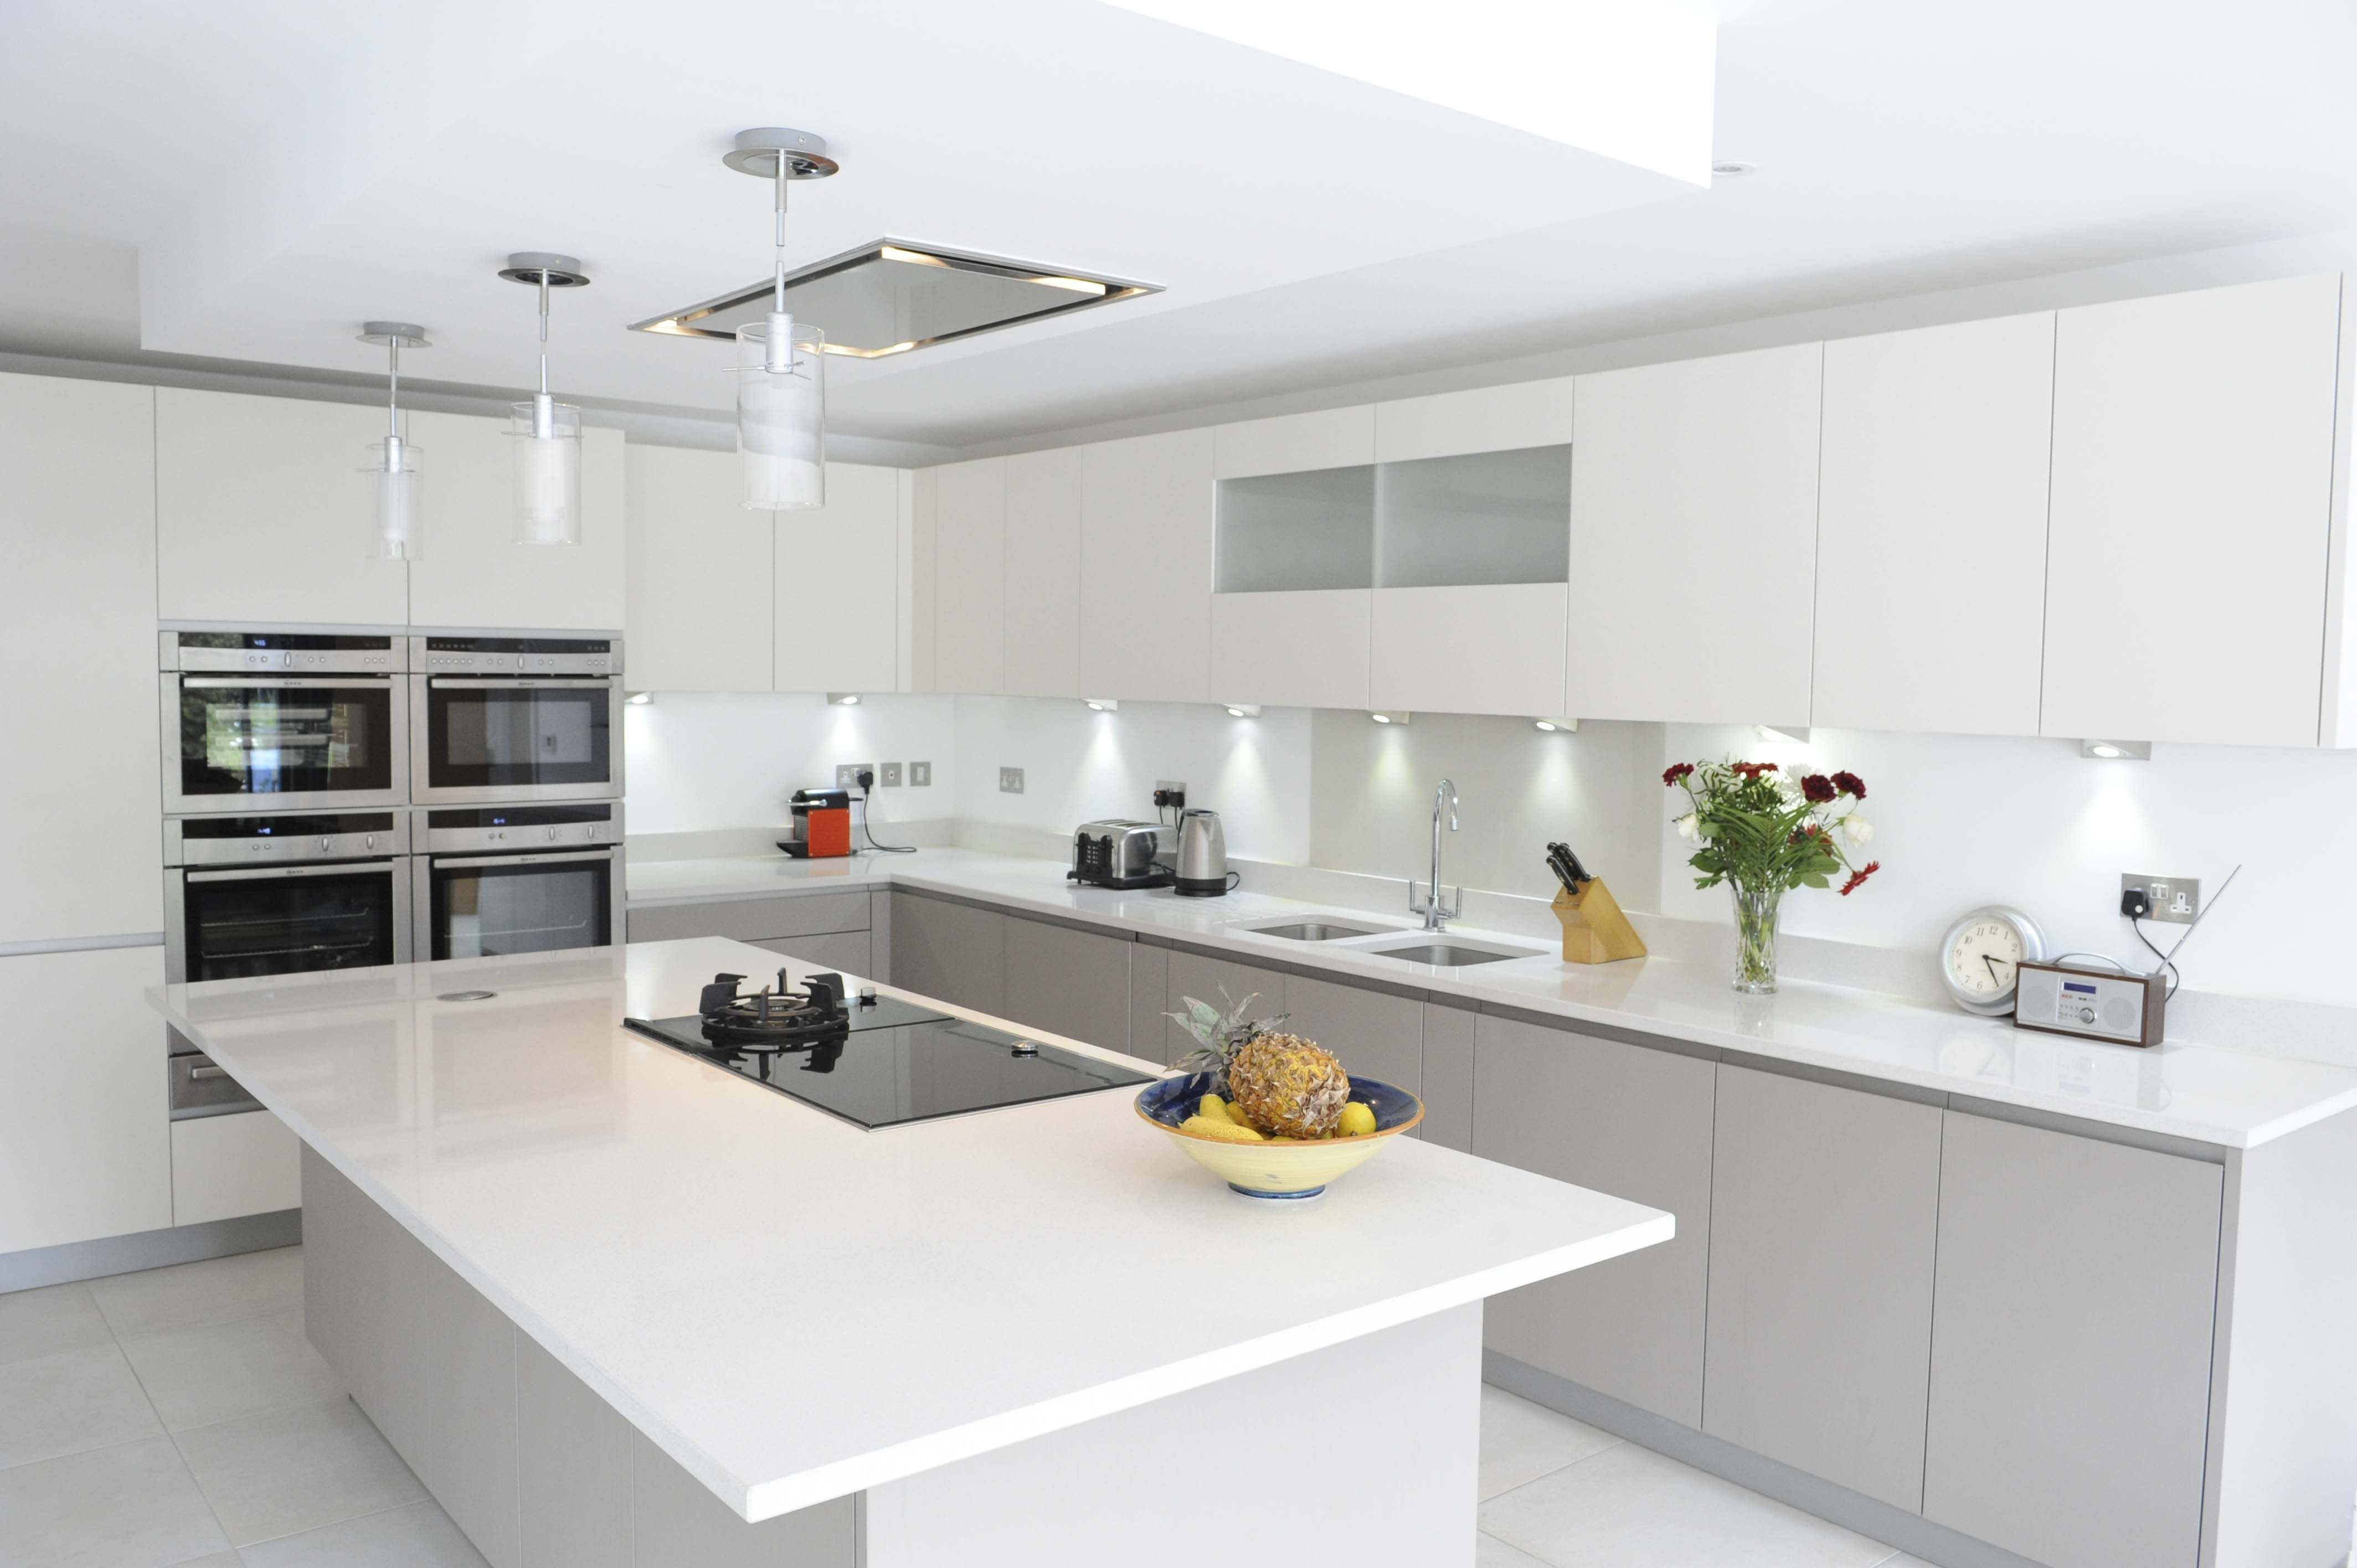 Calm Kitchen for a Busy Family | Handleless kitchen, Norte and Lava